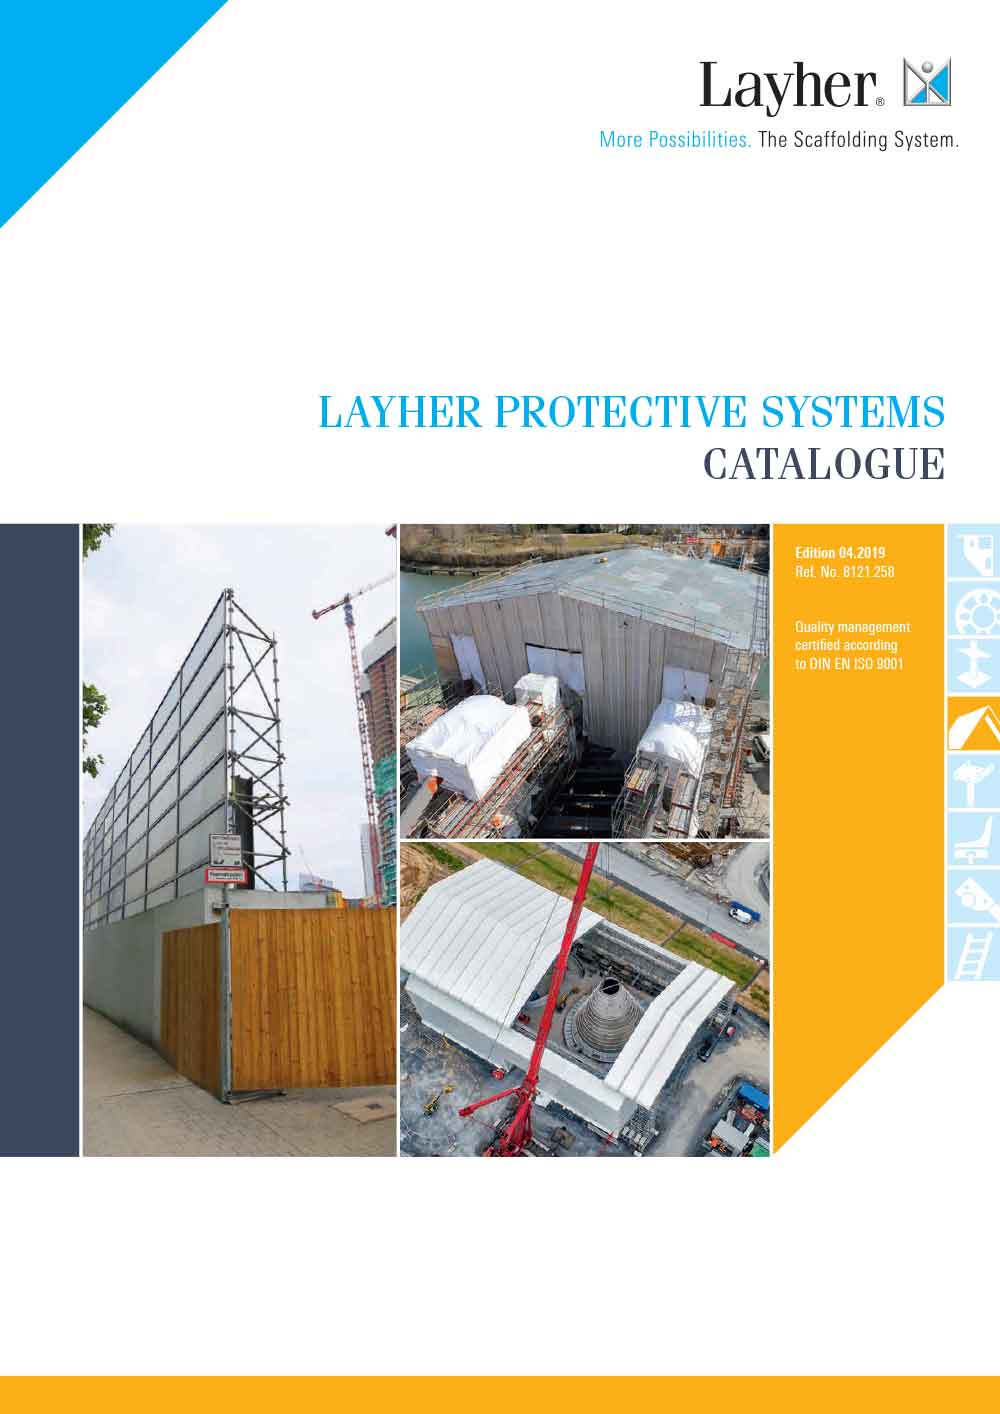 Layher Protective Systems